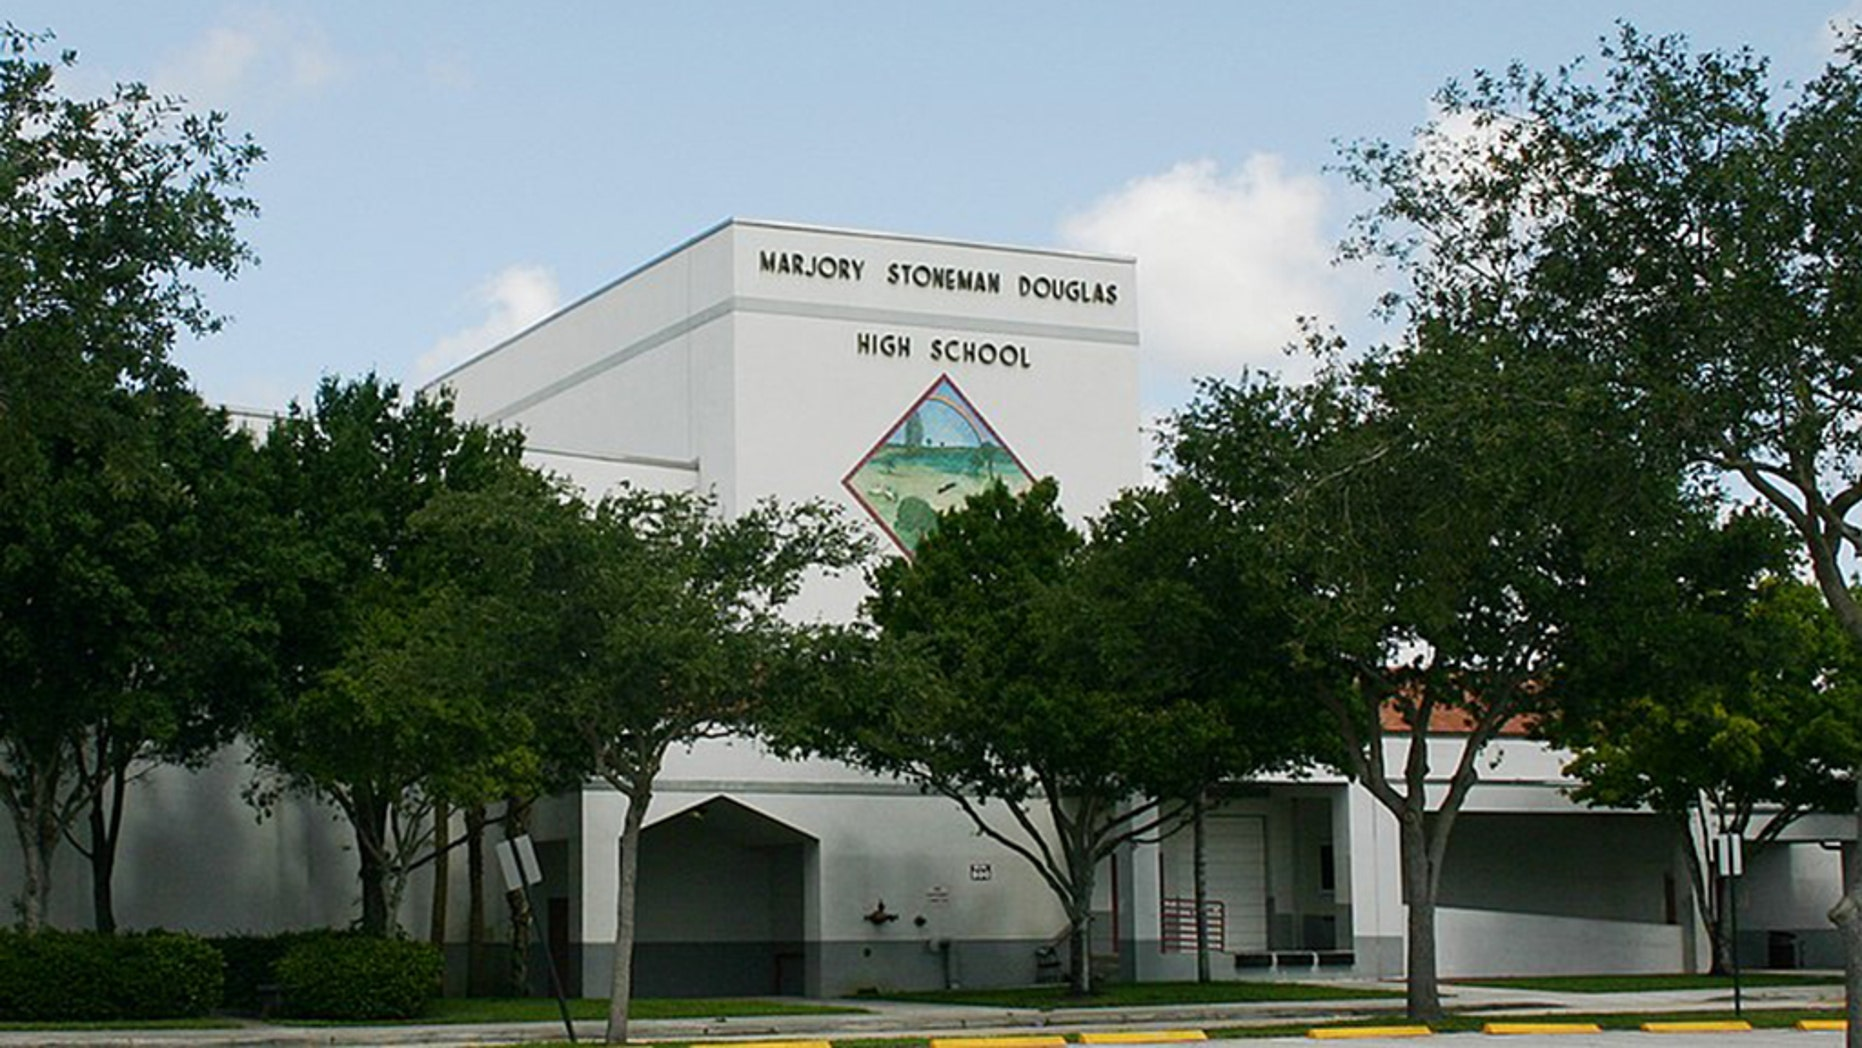 An unarmed campus monitor at Marjory Stoneman Douglas High School told police officers he warned school staff about Nikolas Cruz as the stormed the campus.